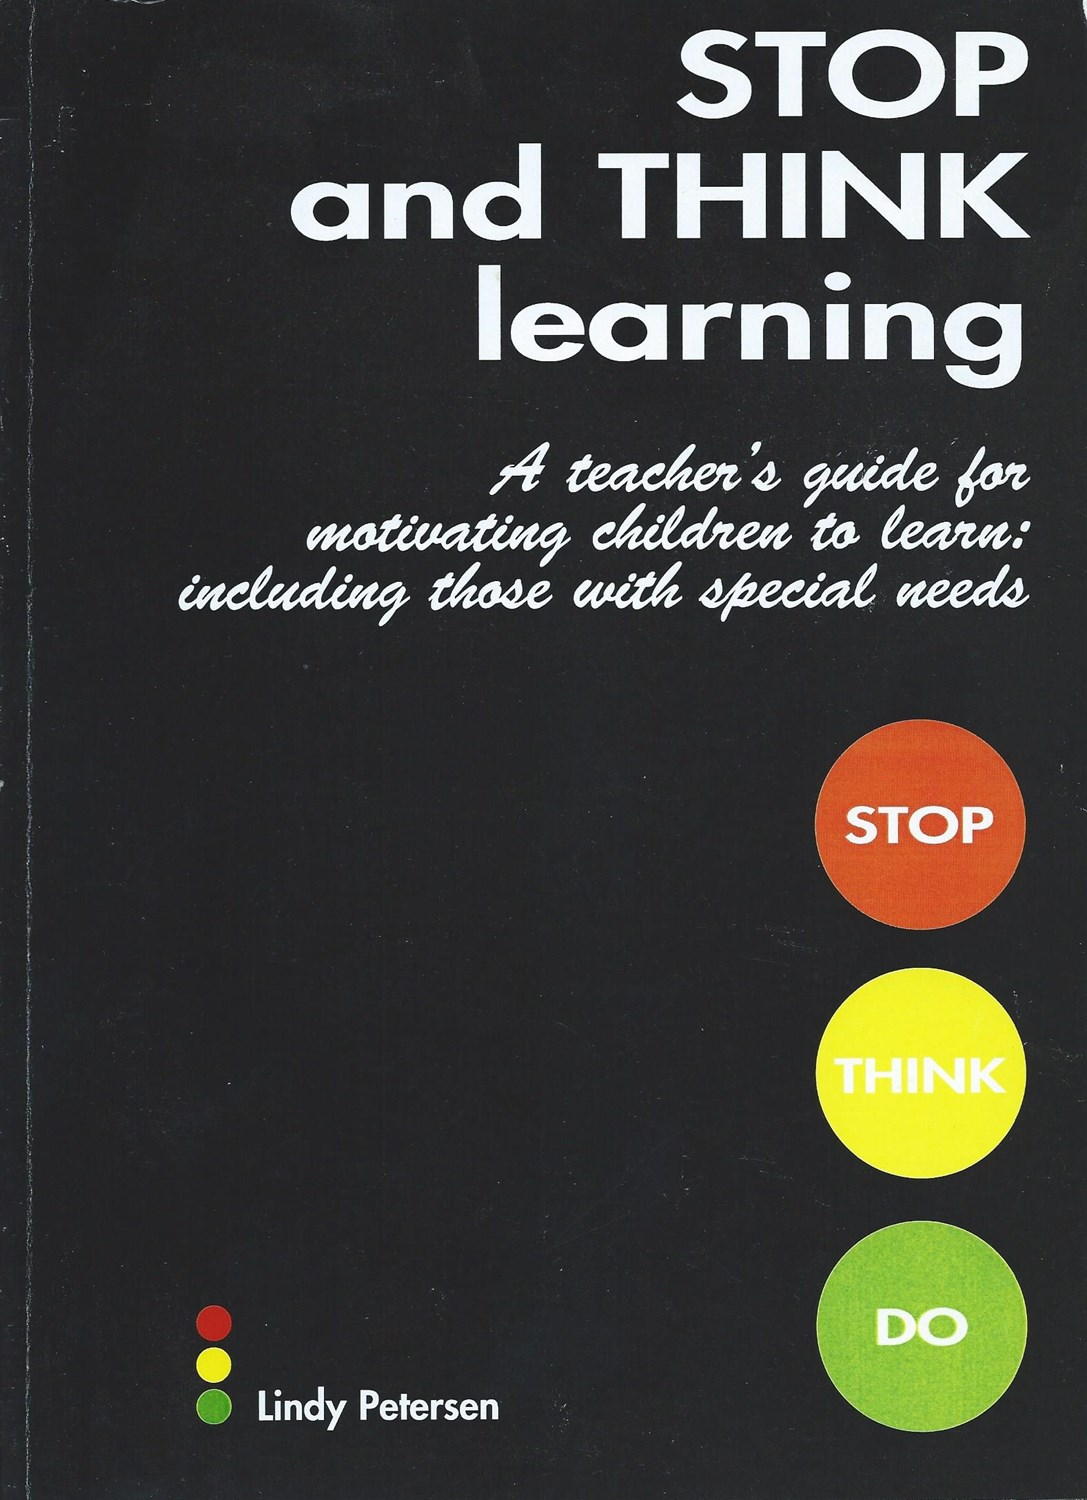 stop and think learning teacher s guide for motivating children